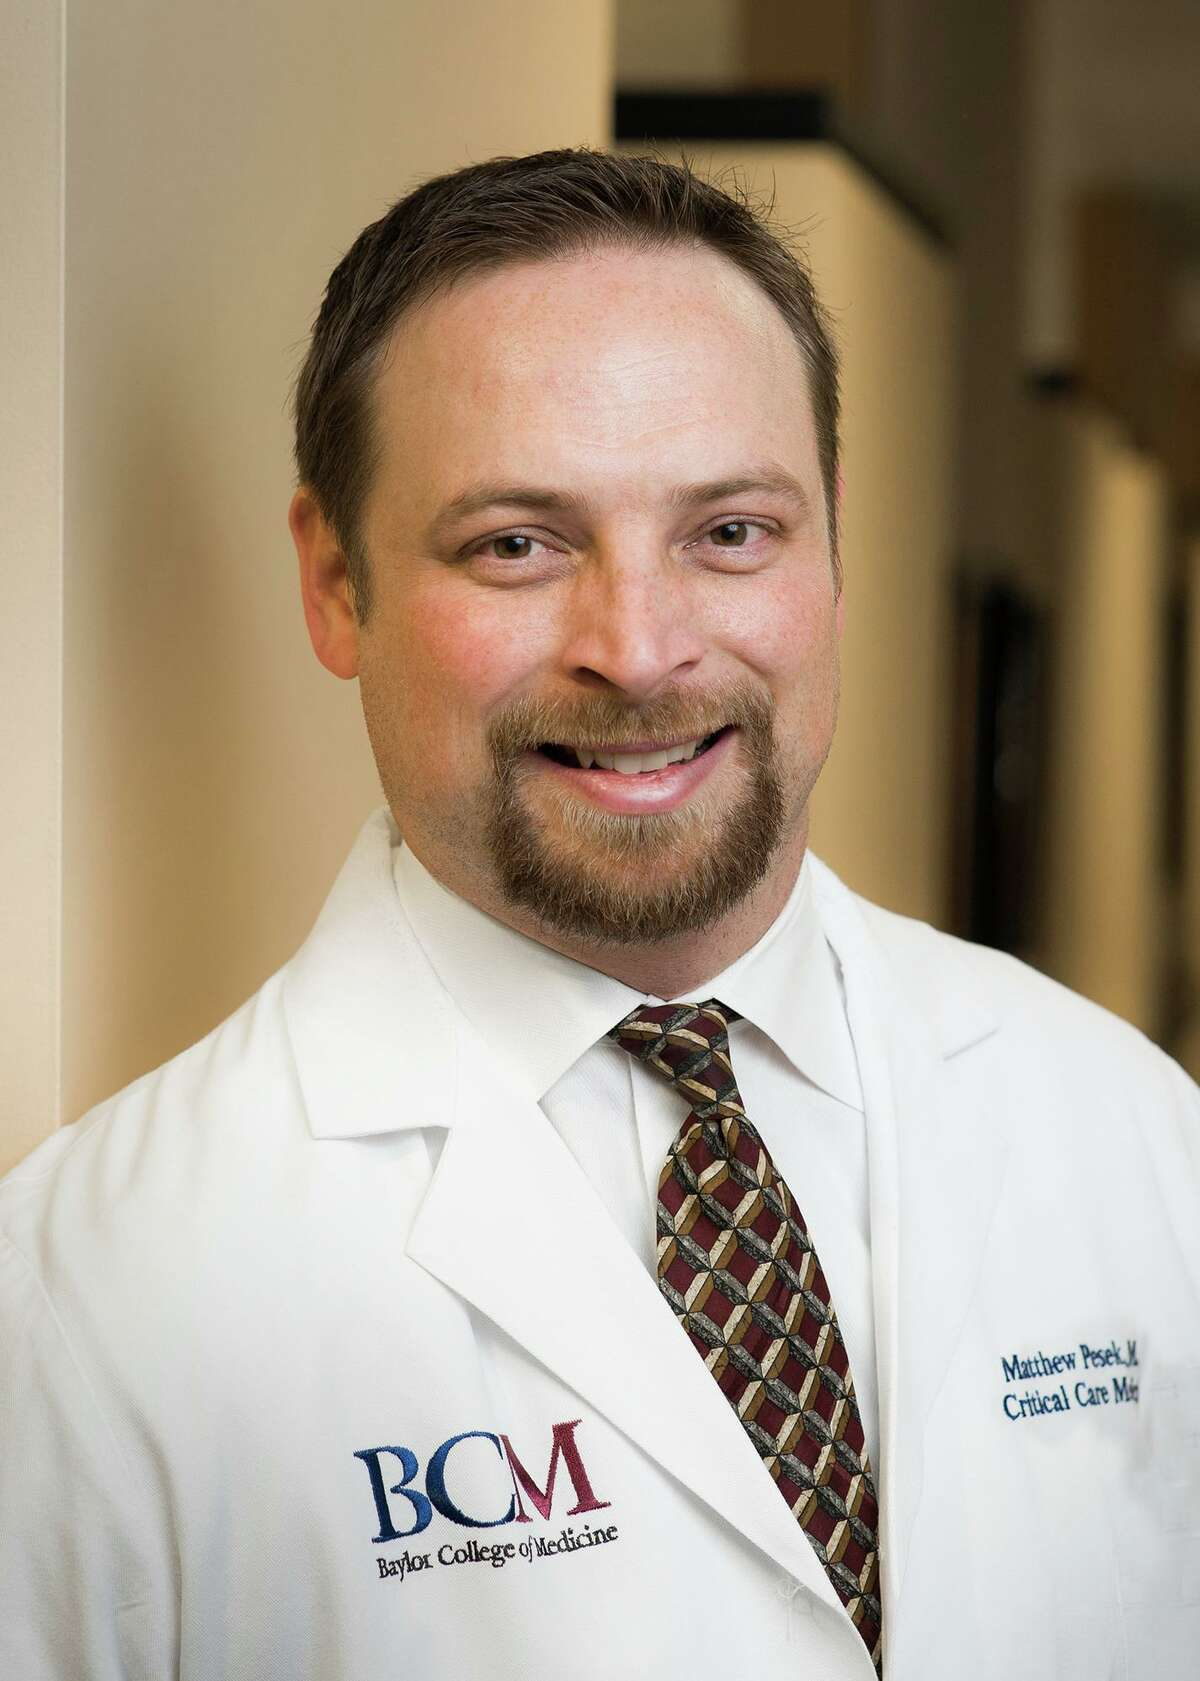 Dr. Matthew Pesek is medical director of the pediatric ICU at Texas Children's Hospital West.